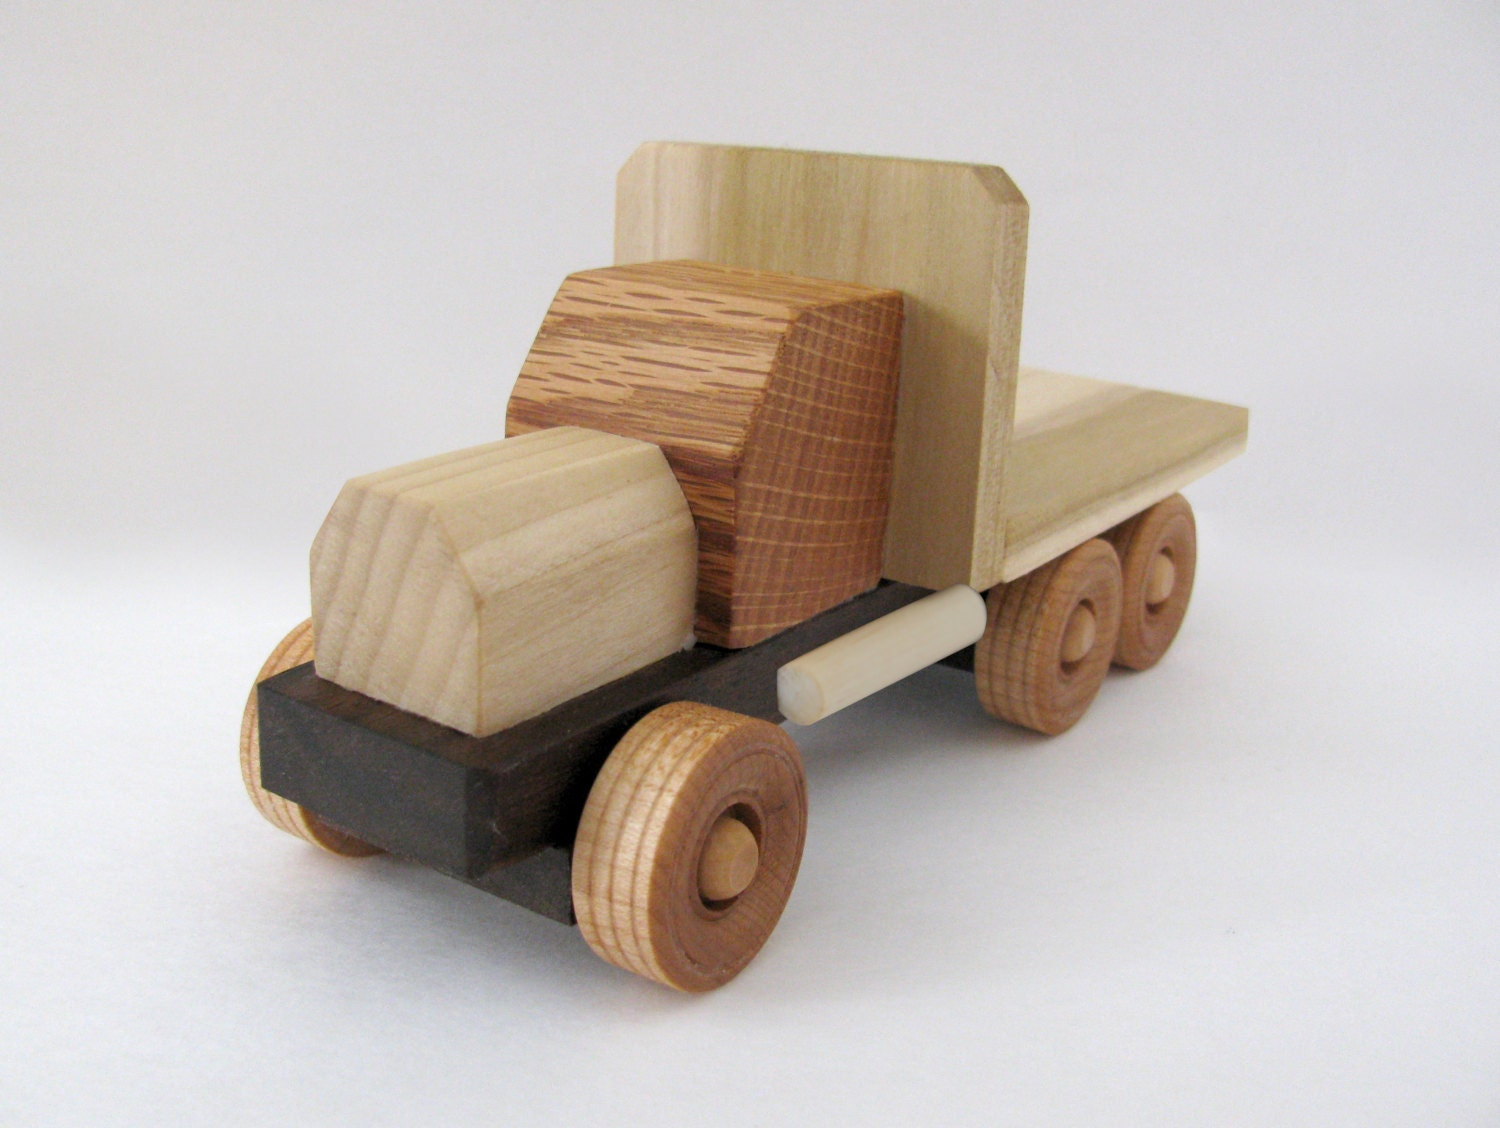 Wooden Toys For Boys : Wooden toy truck toys for boys great kids gift reclaimed